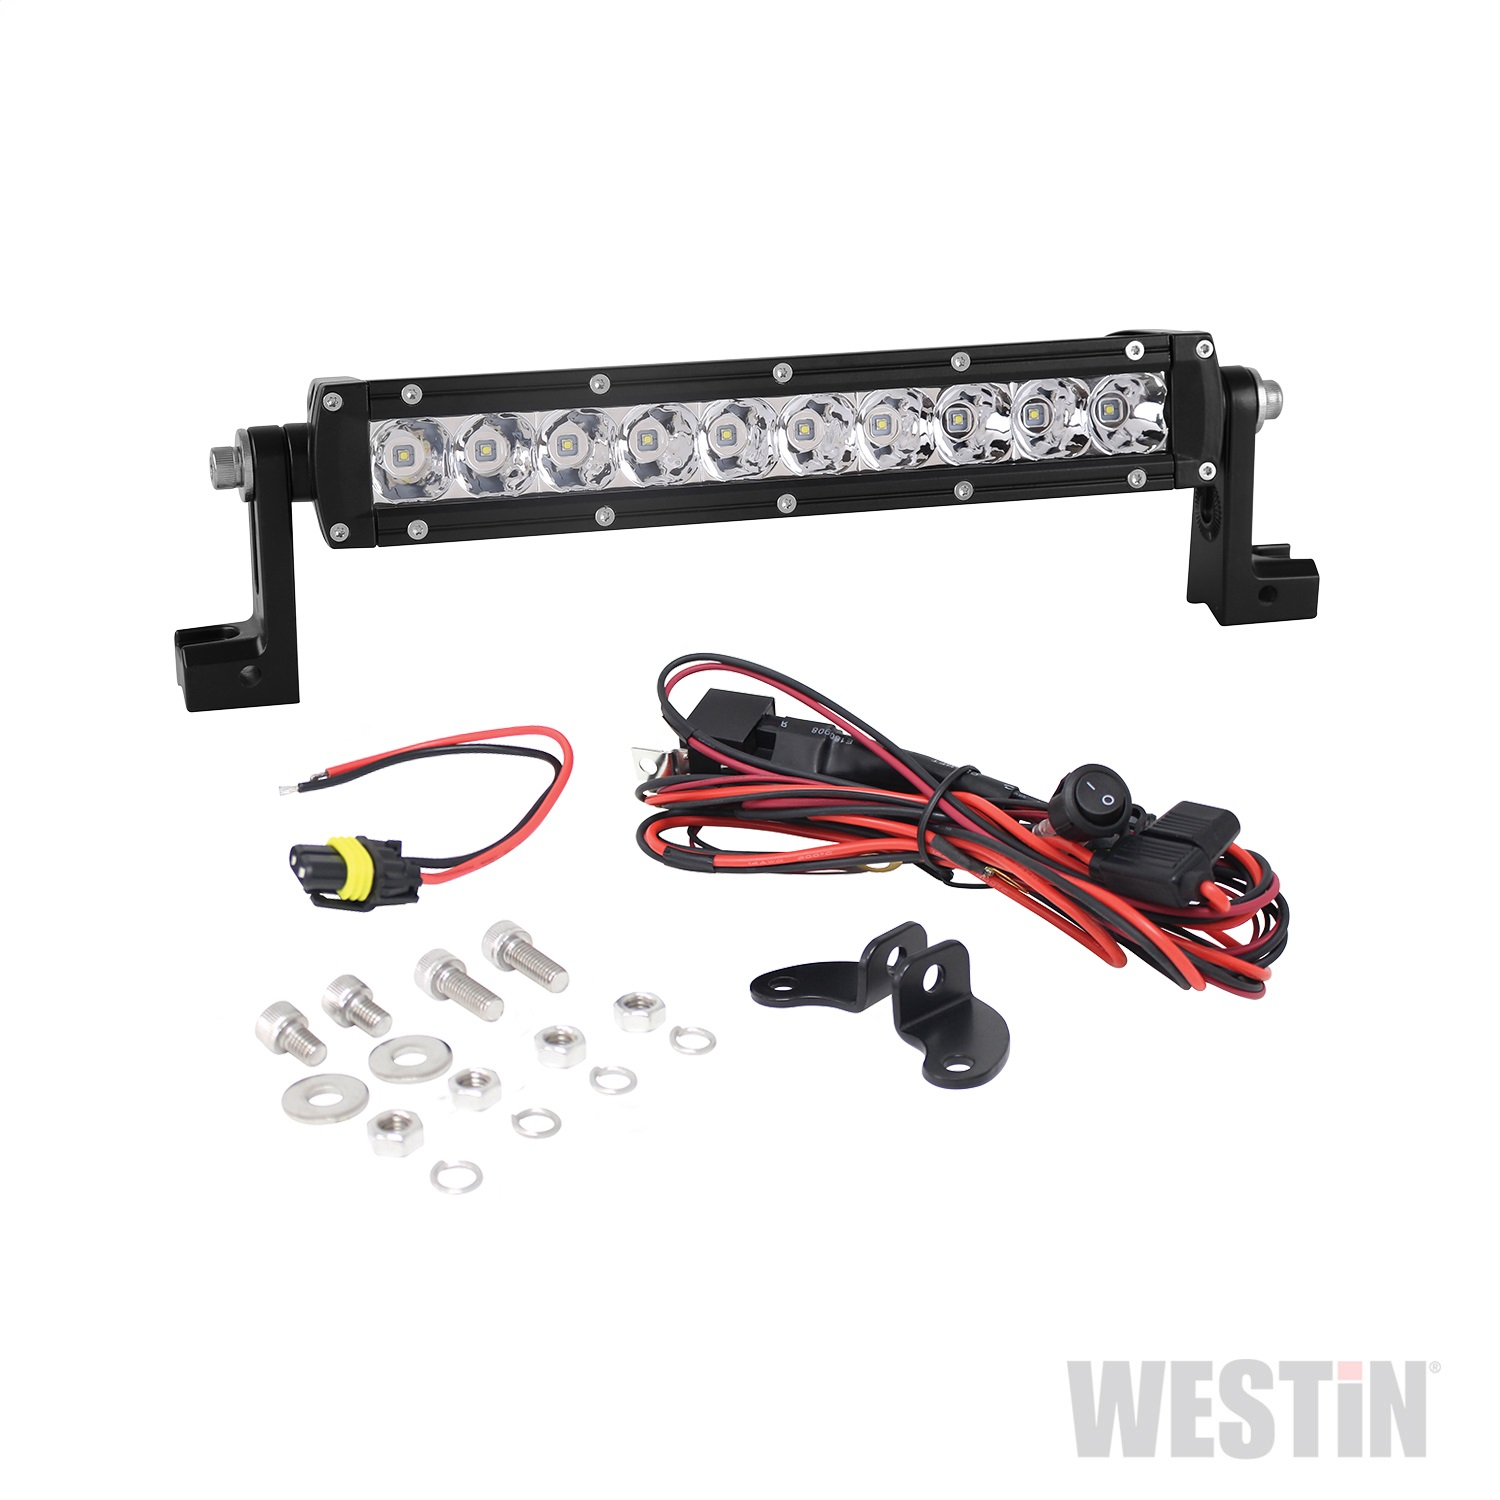 Westin 09-12270-6S Xtreme LED Light Bar